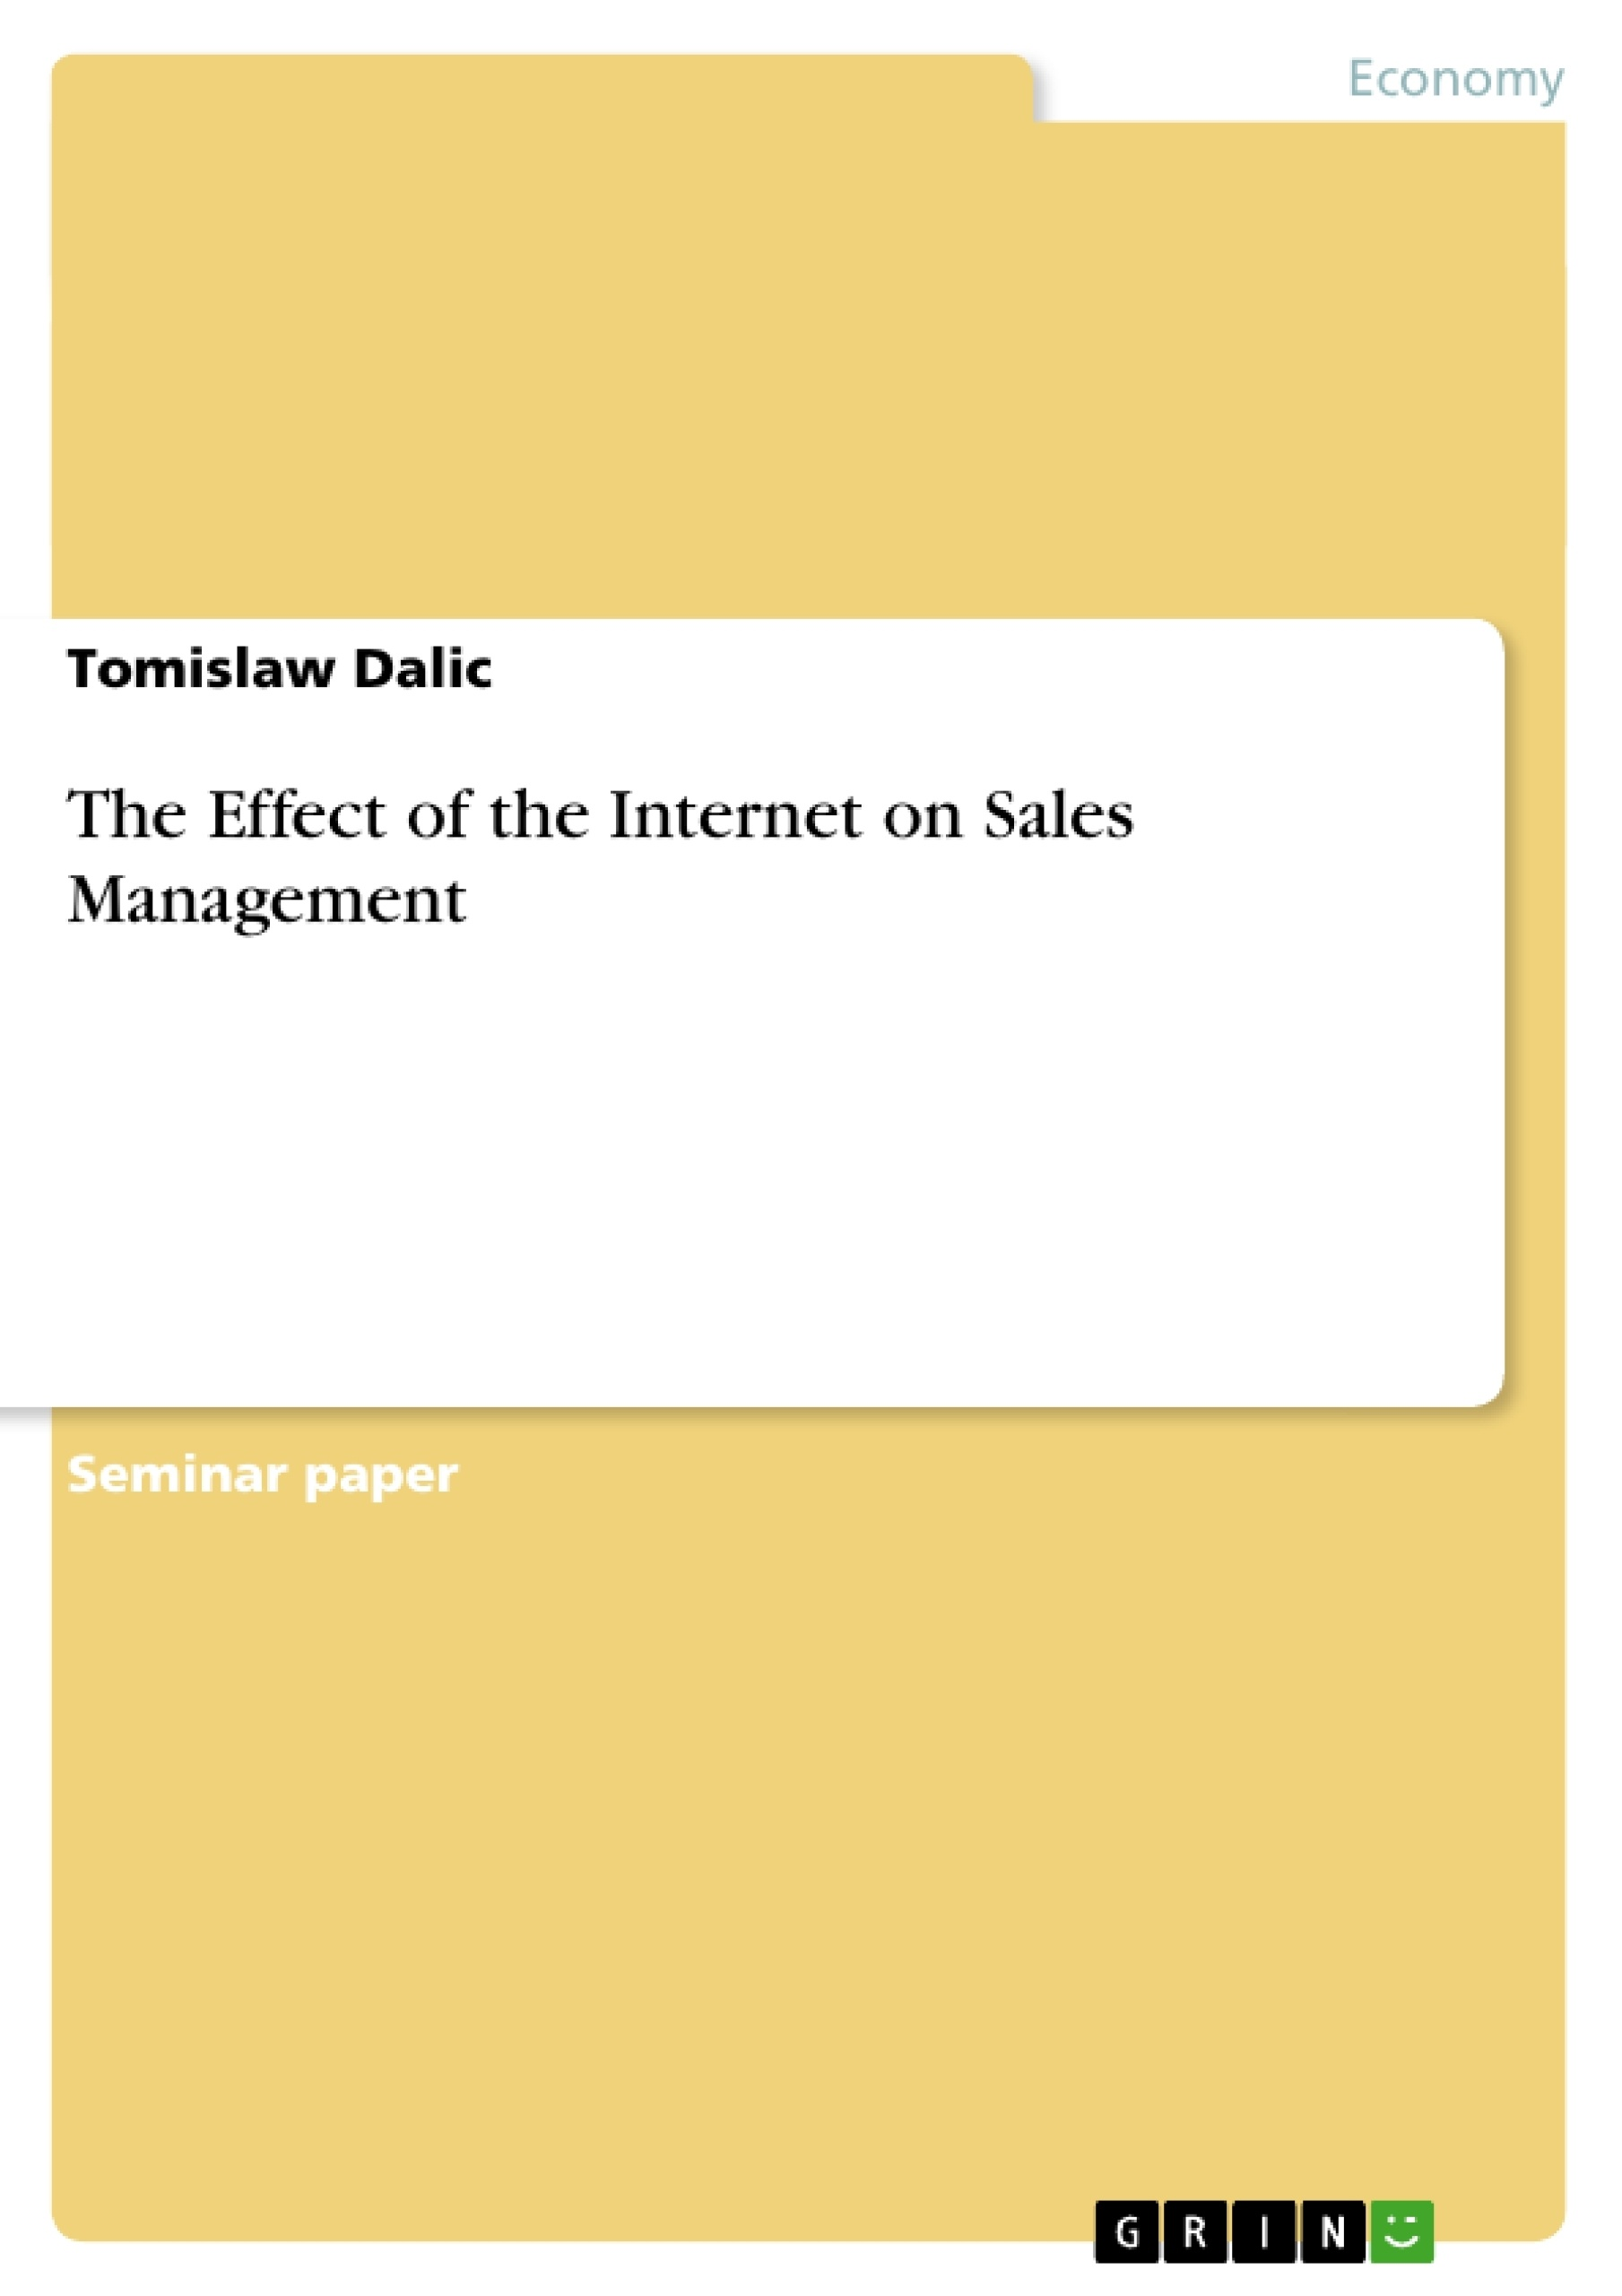 Title: The Effect of the Internet on Sales Management